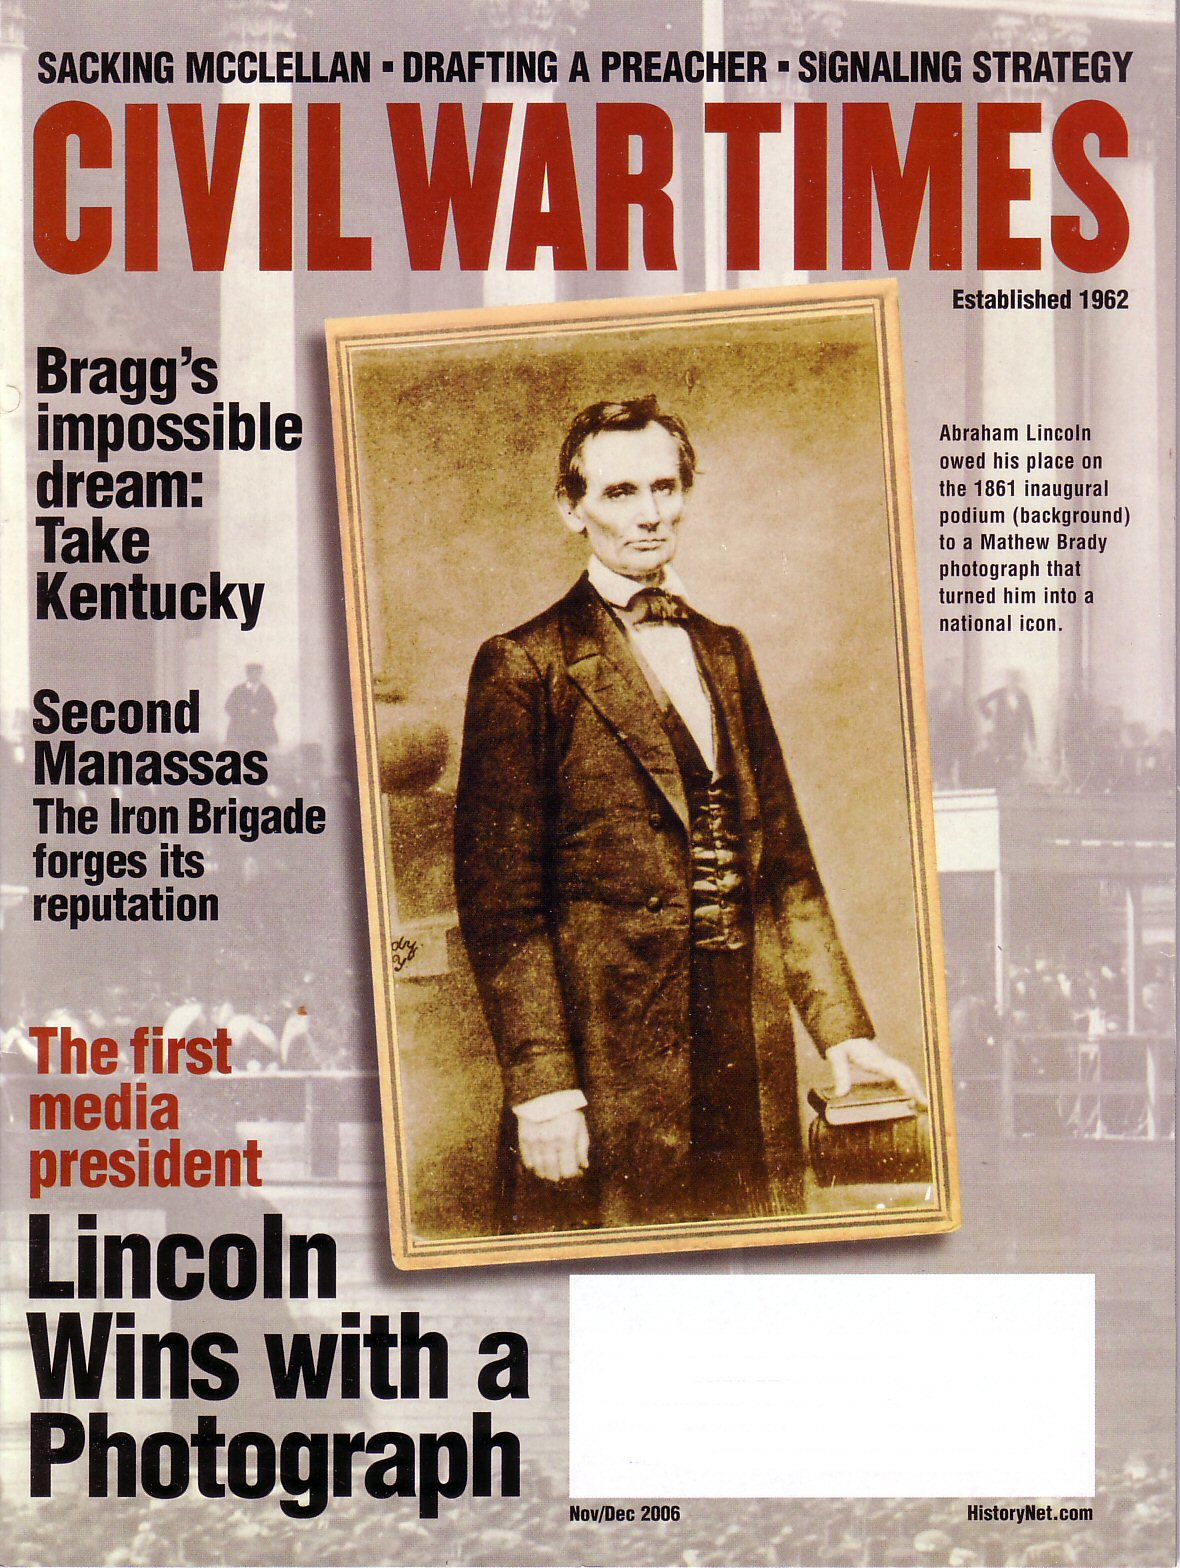 Civil War Times, Volume 45, Number 9 (November/December 2006)